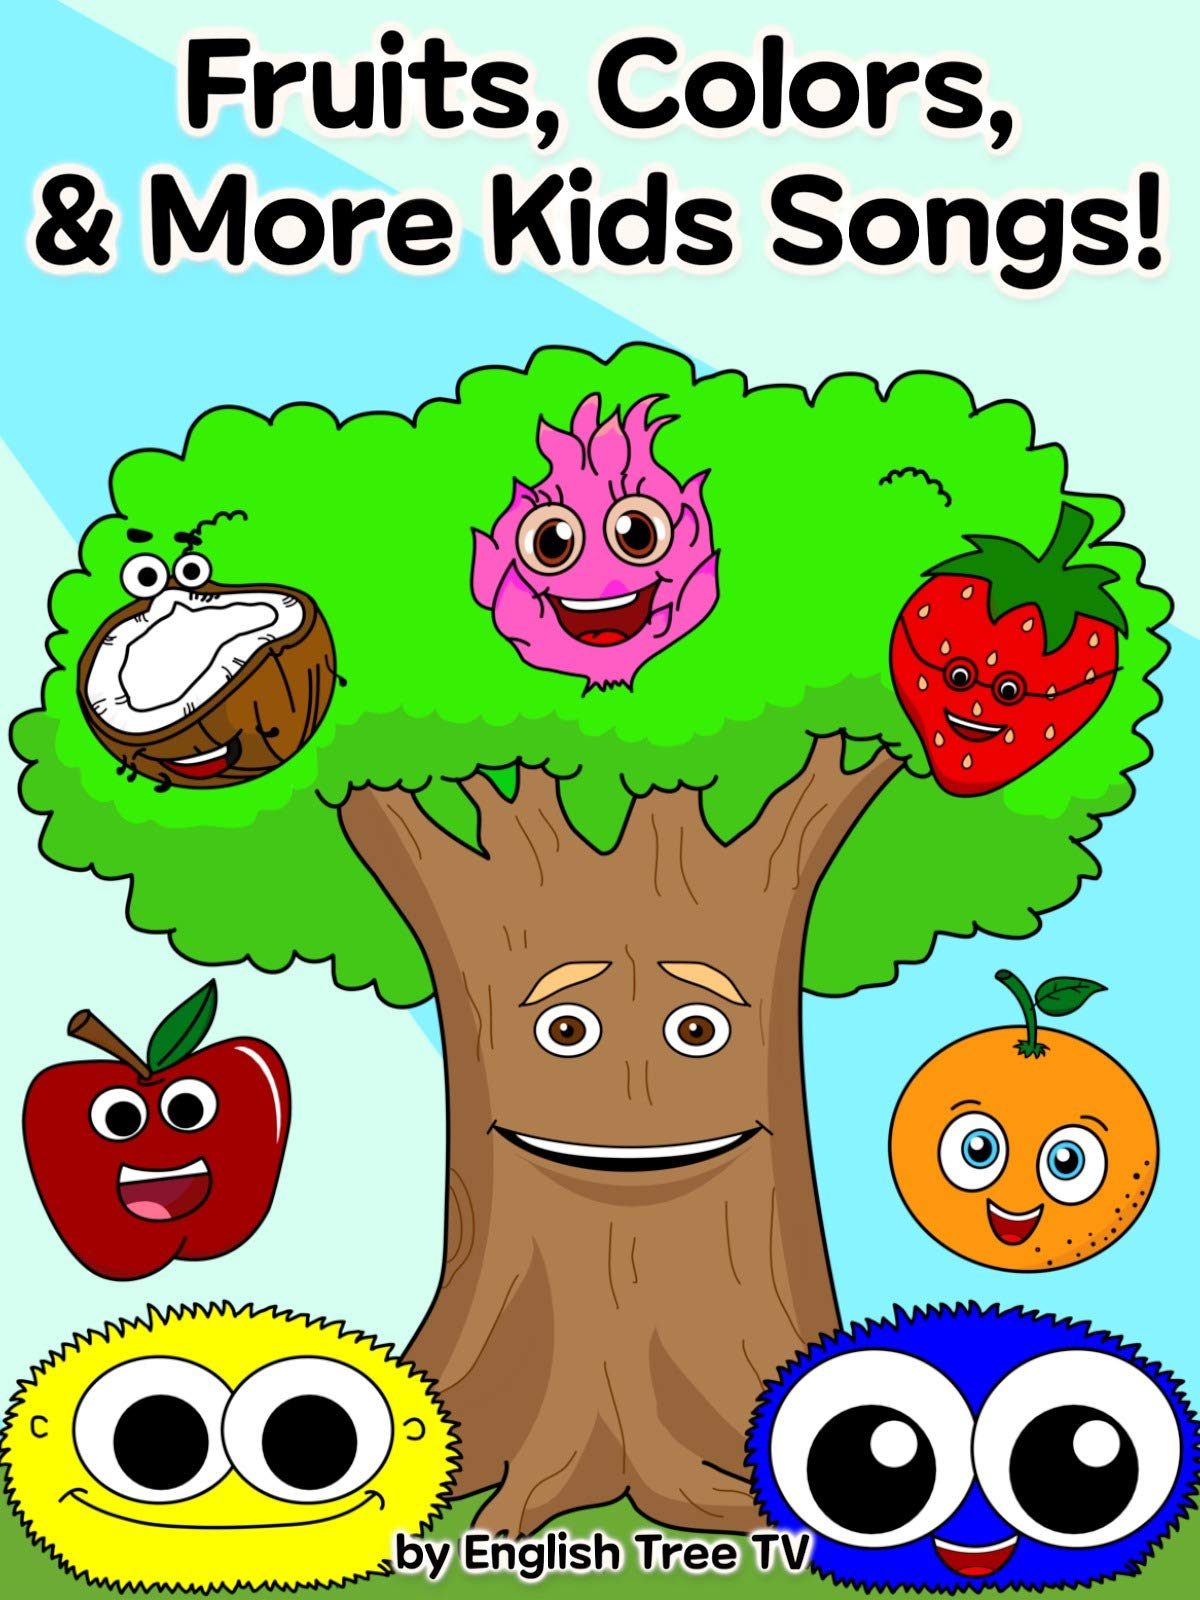 Fruits, Colors, Shapes & More Kids Songs by English Tree TV